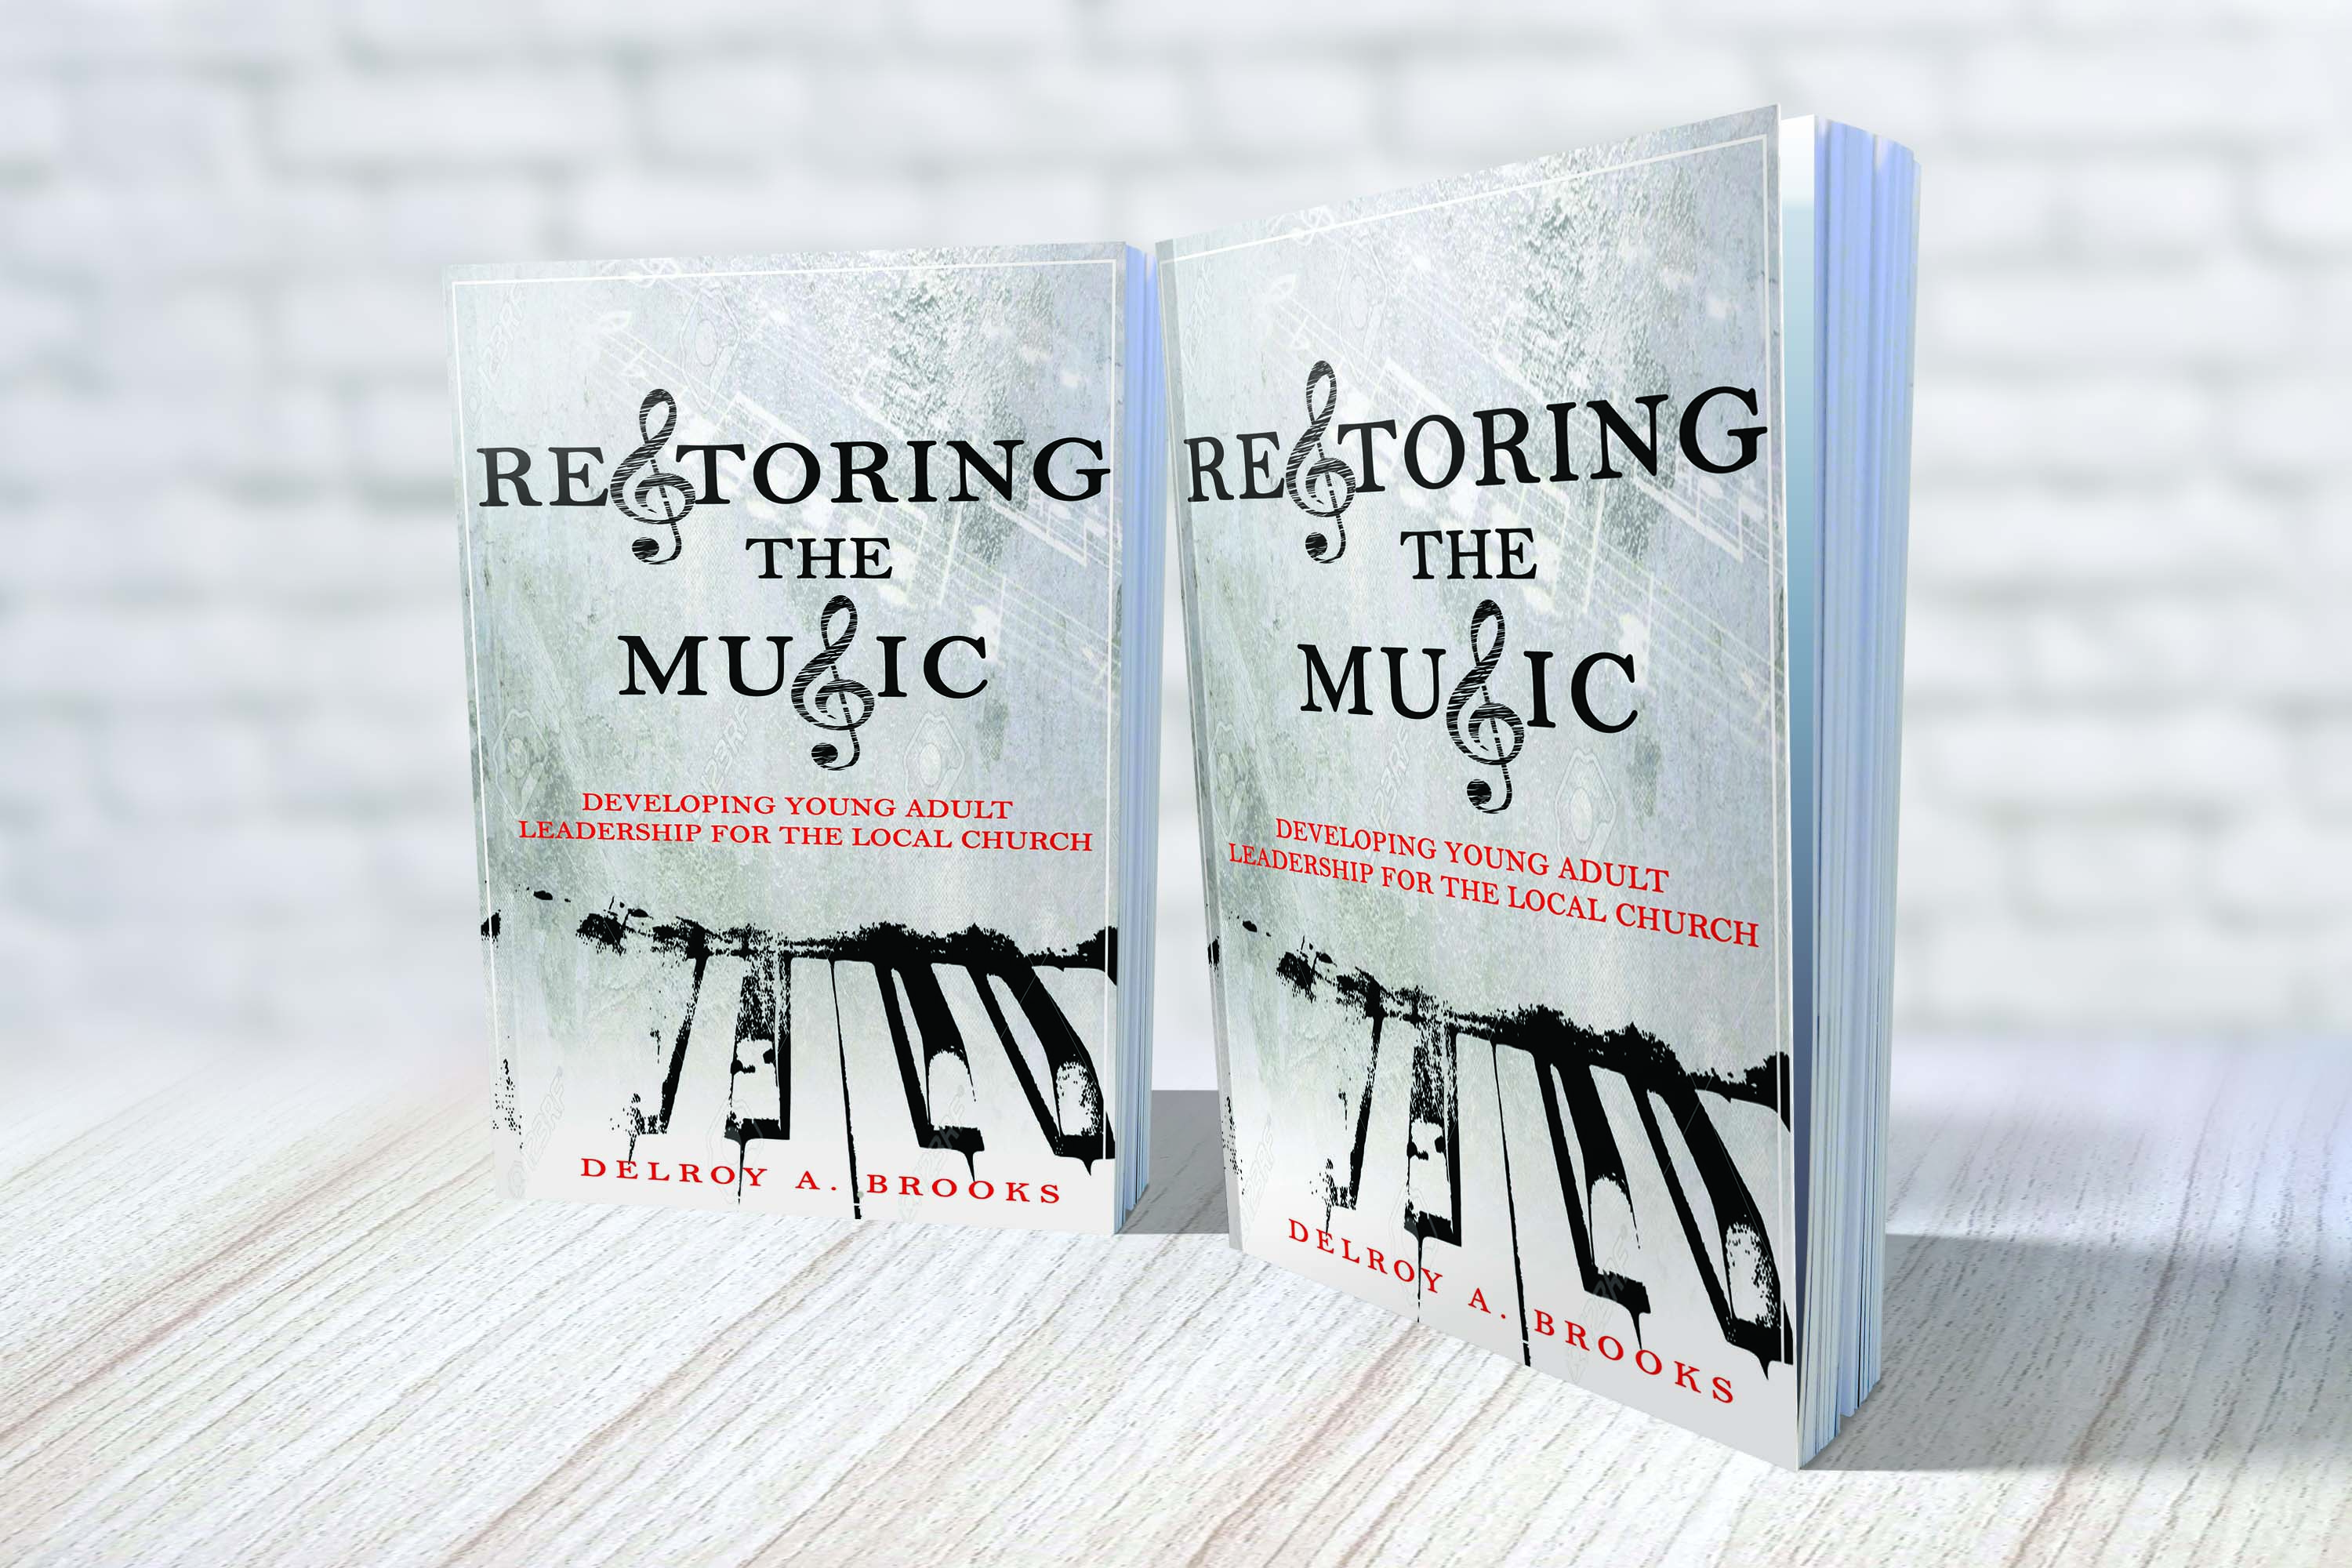 Restoring the Music, by Delroy Brooks